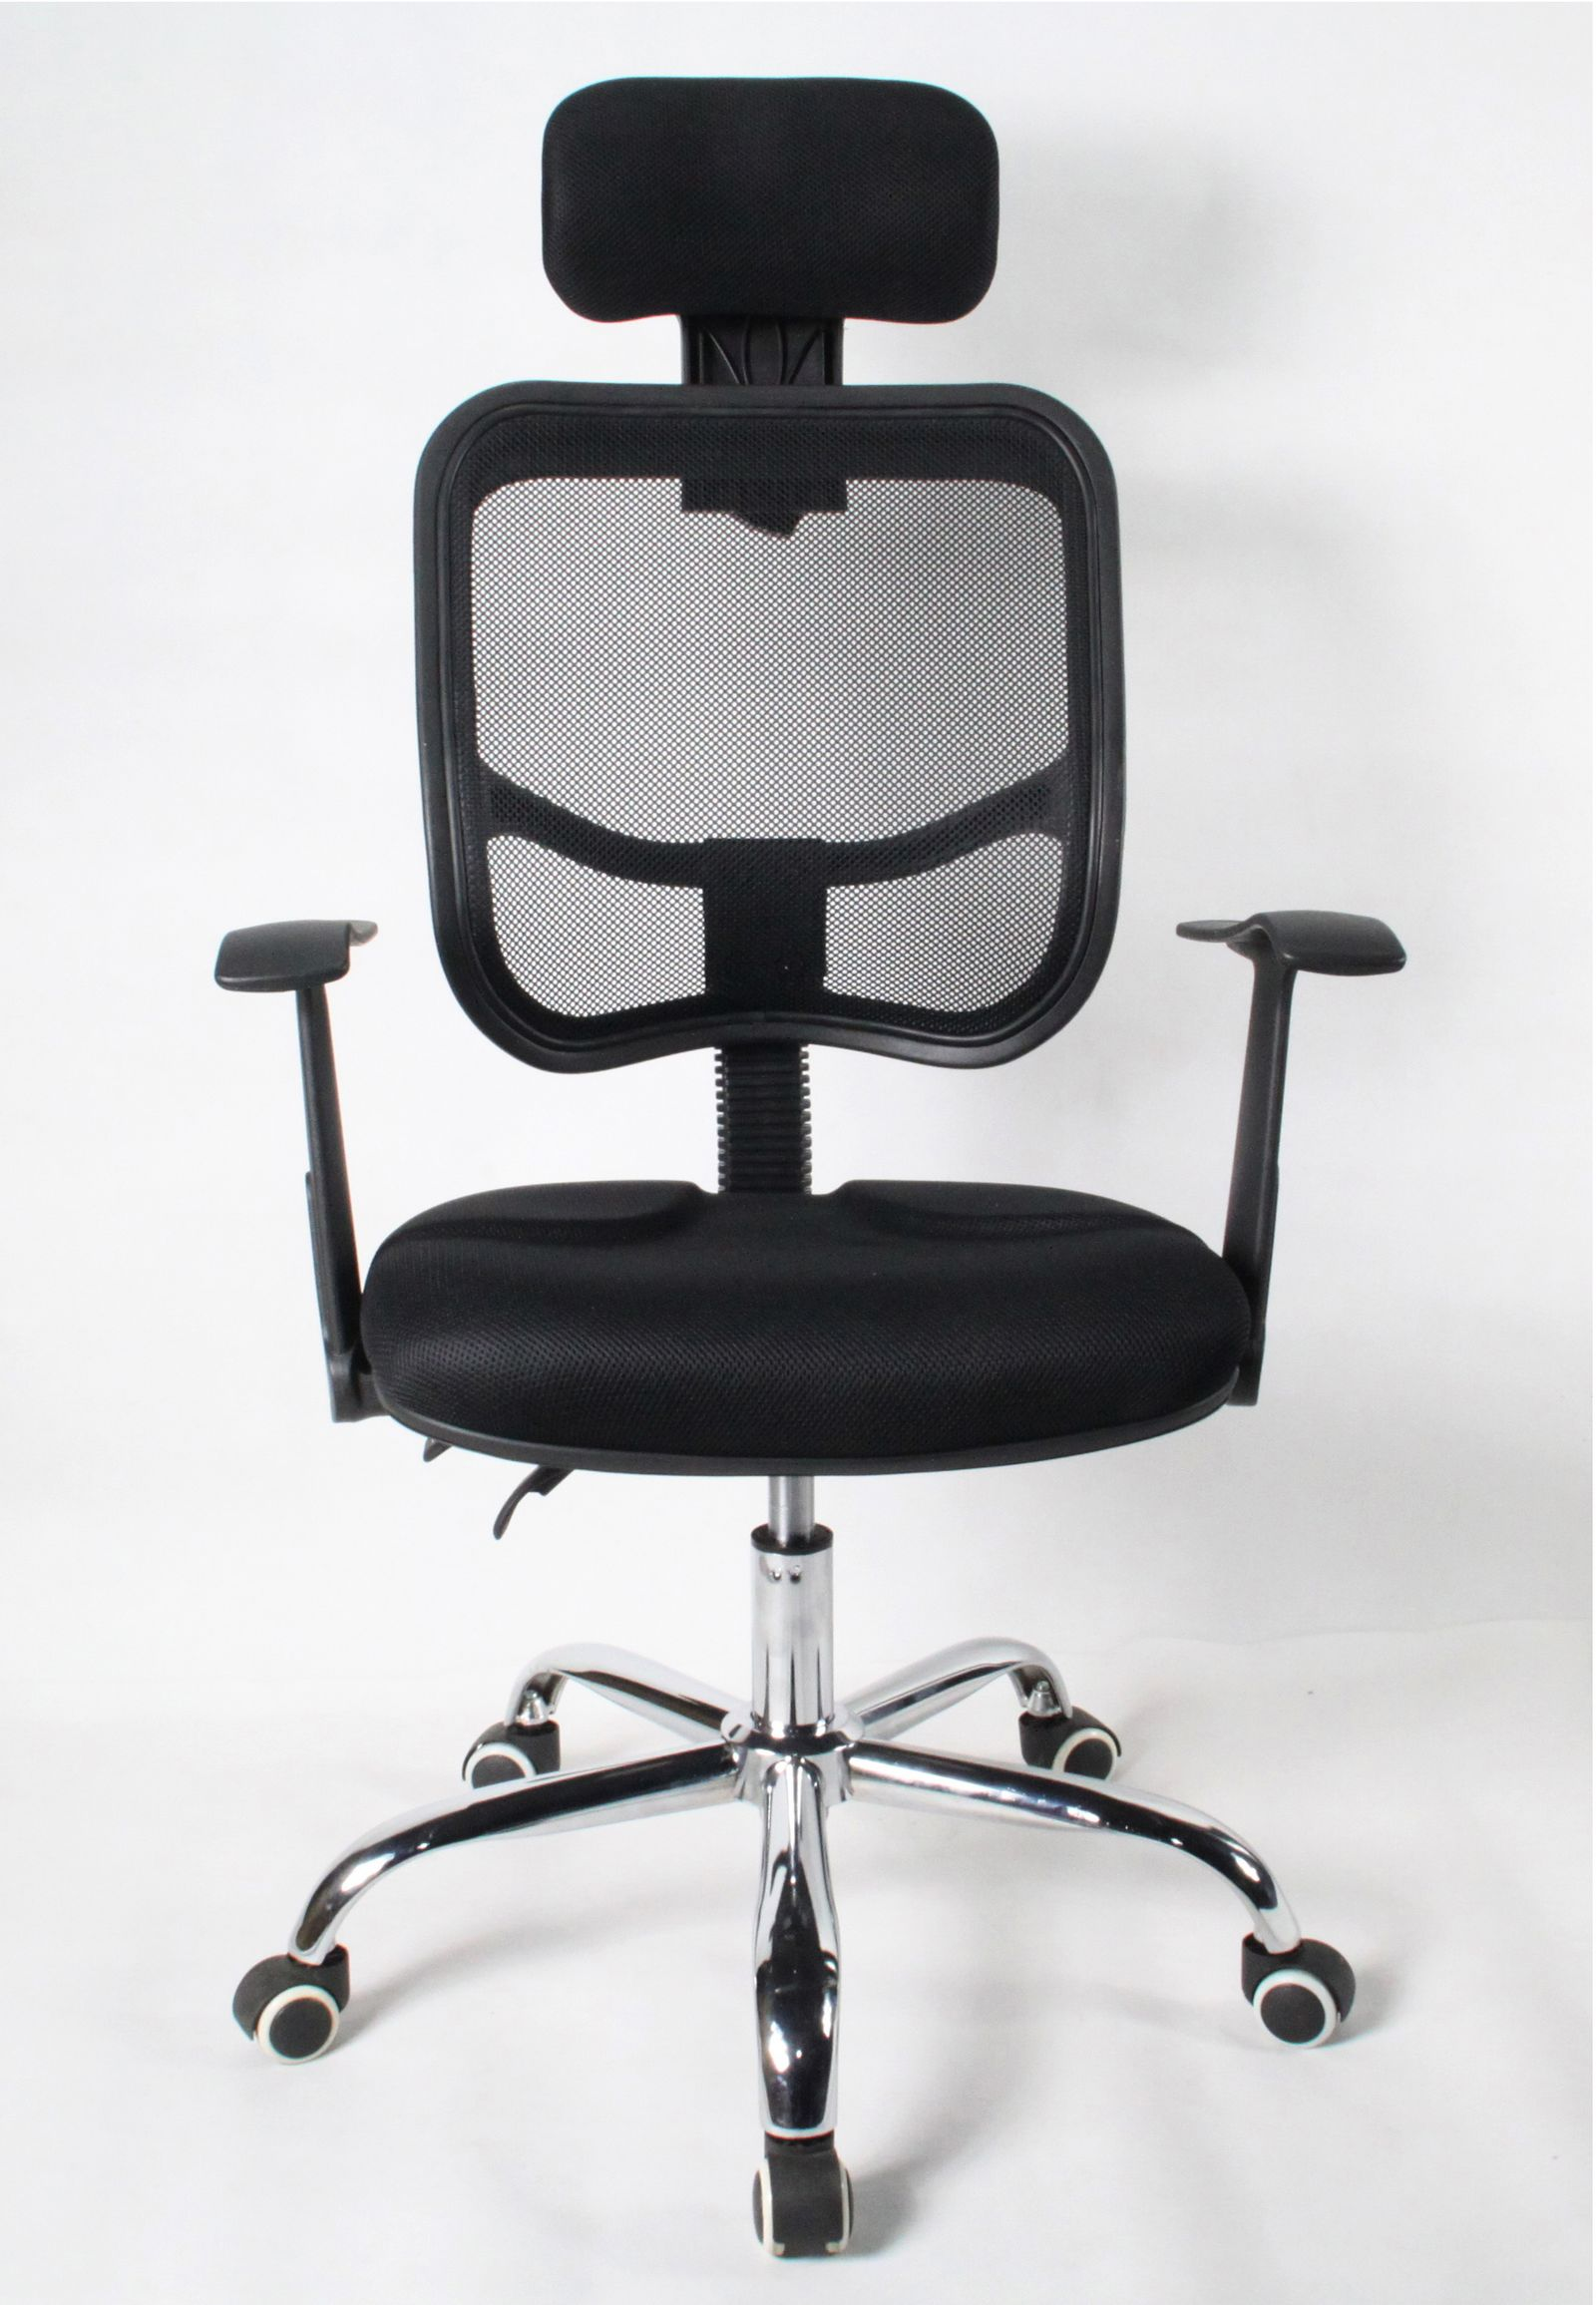 Adjustable Reclining Executive Office Computer Mesh Chrome Chair Black